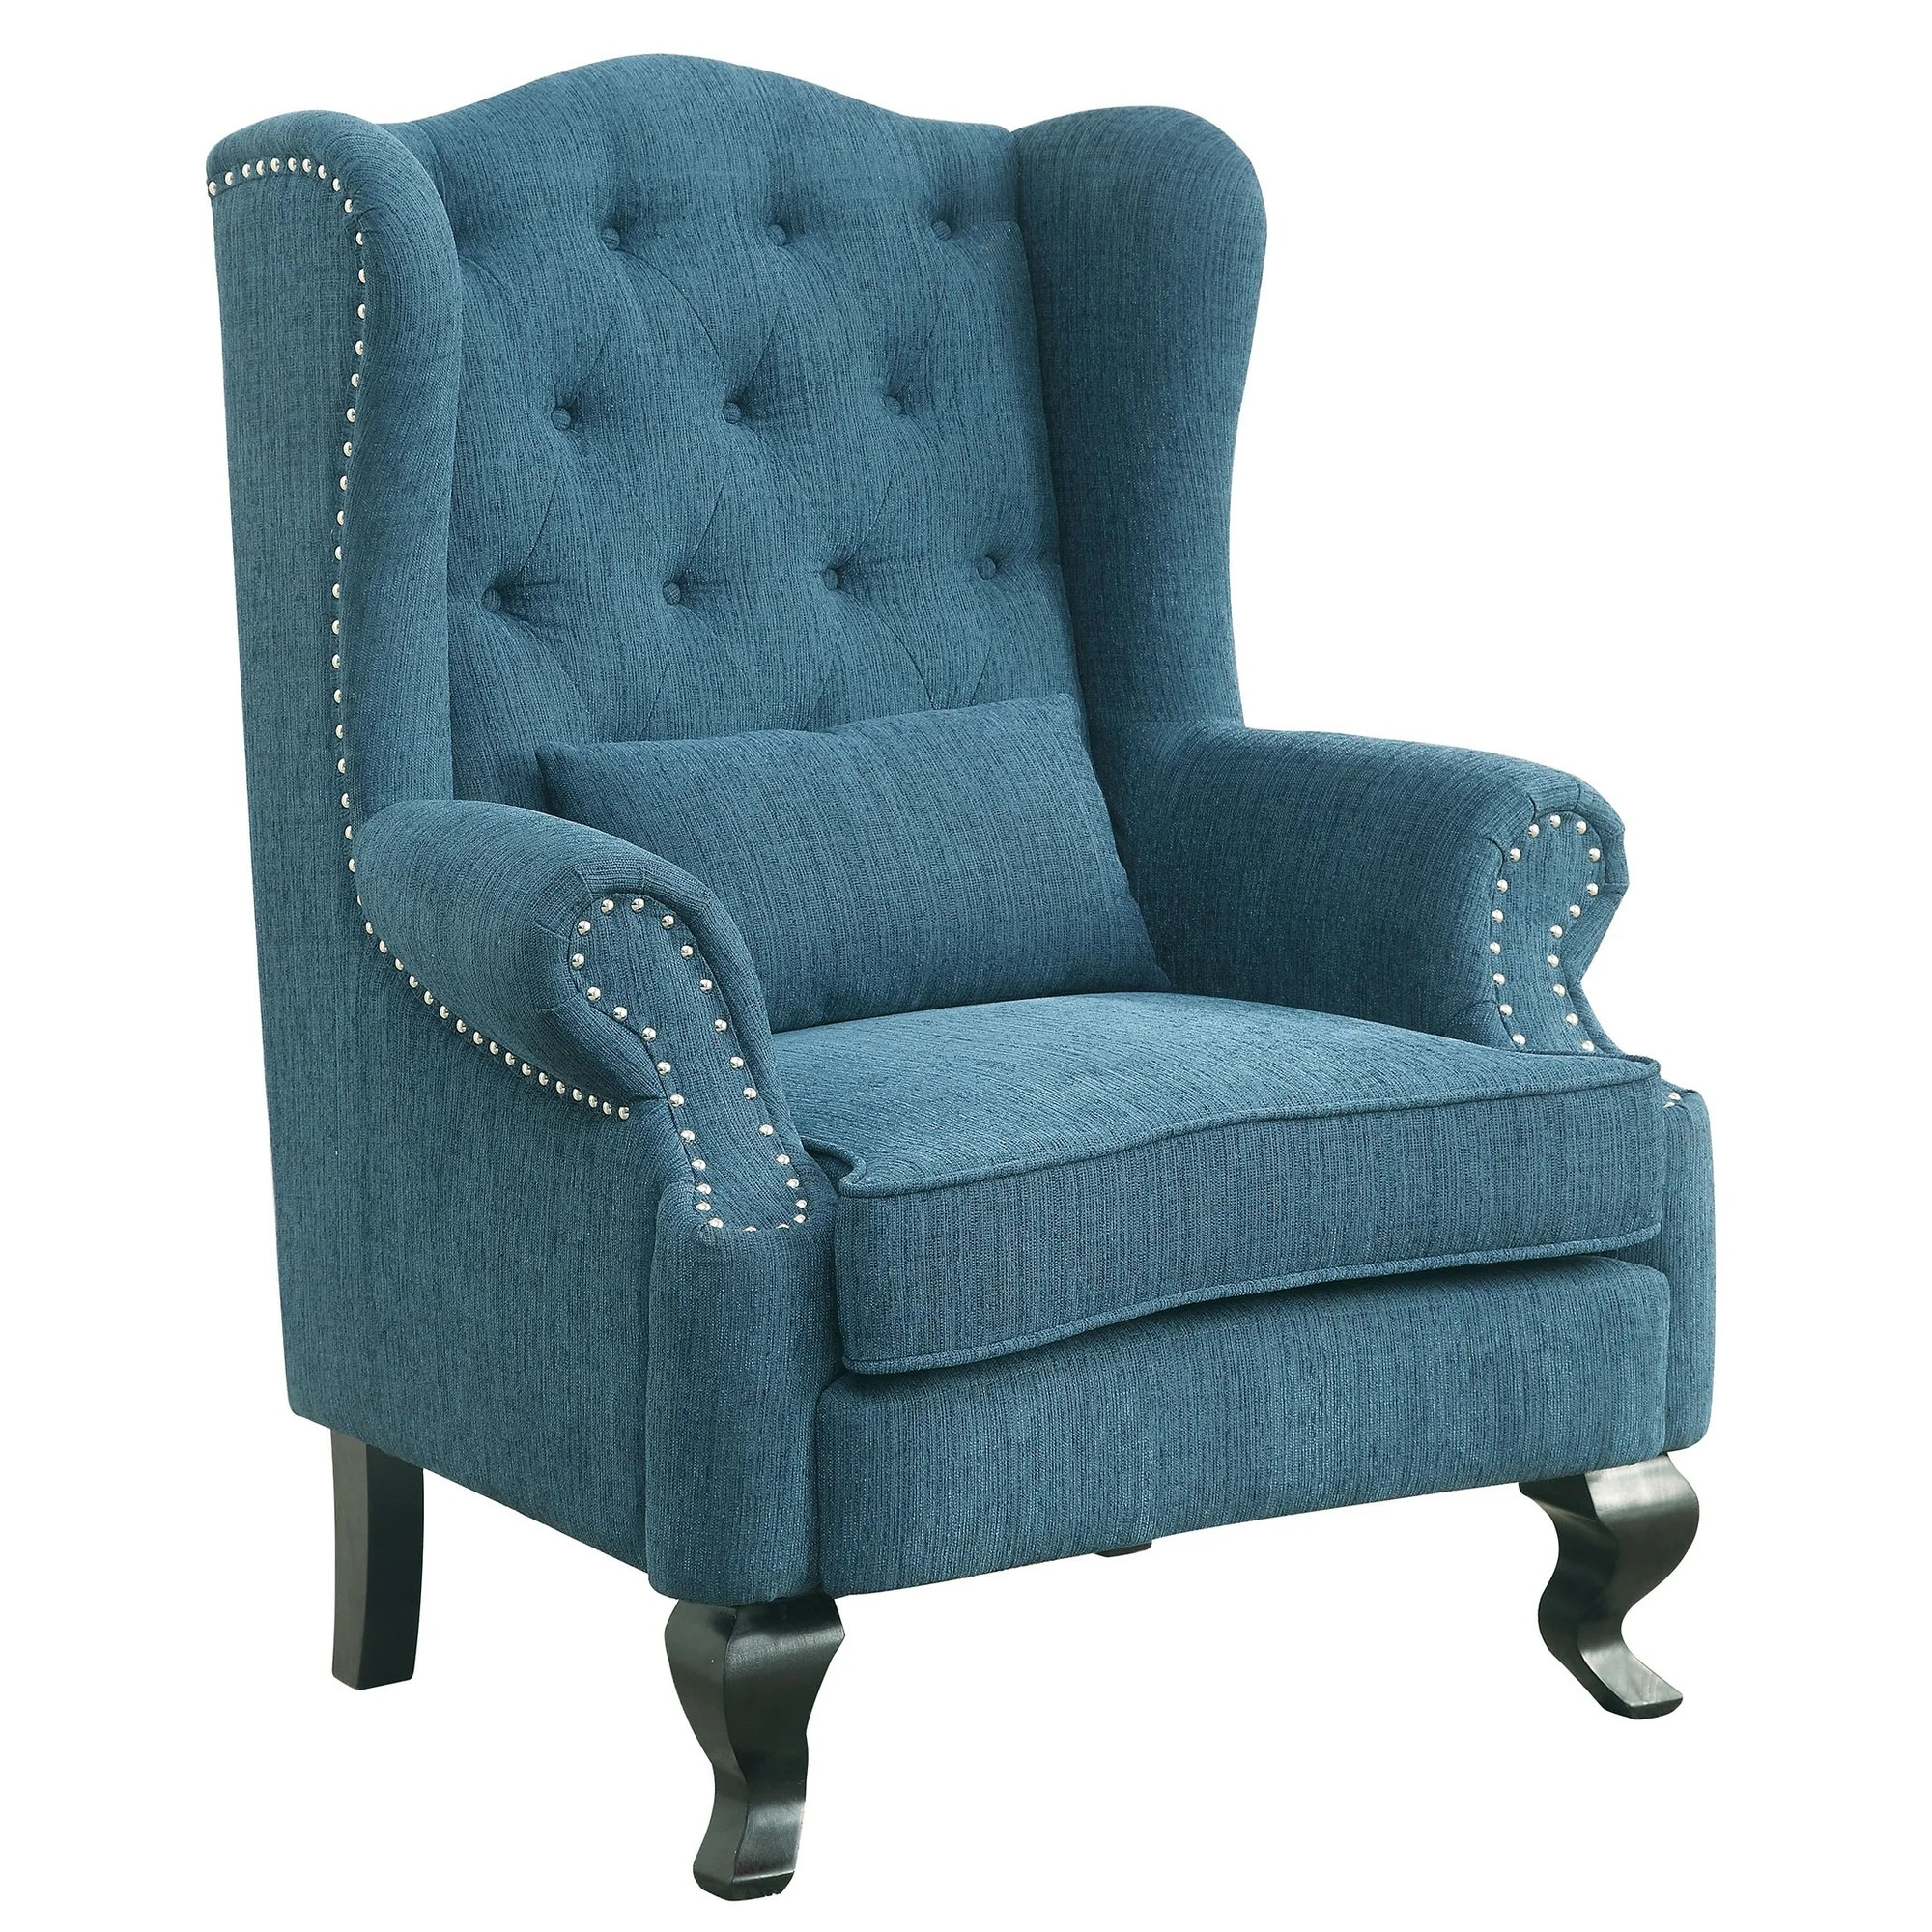 Wayfair Wingback Chair Enitiallab Mareena Wingback Chair And Reviews Wayfair